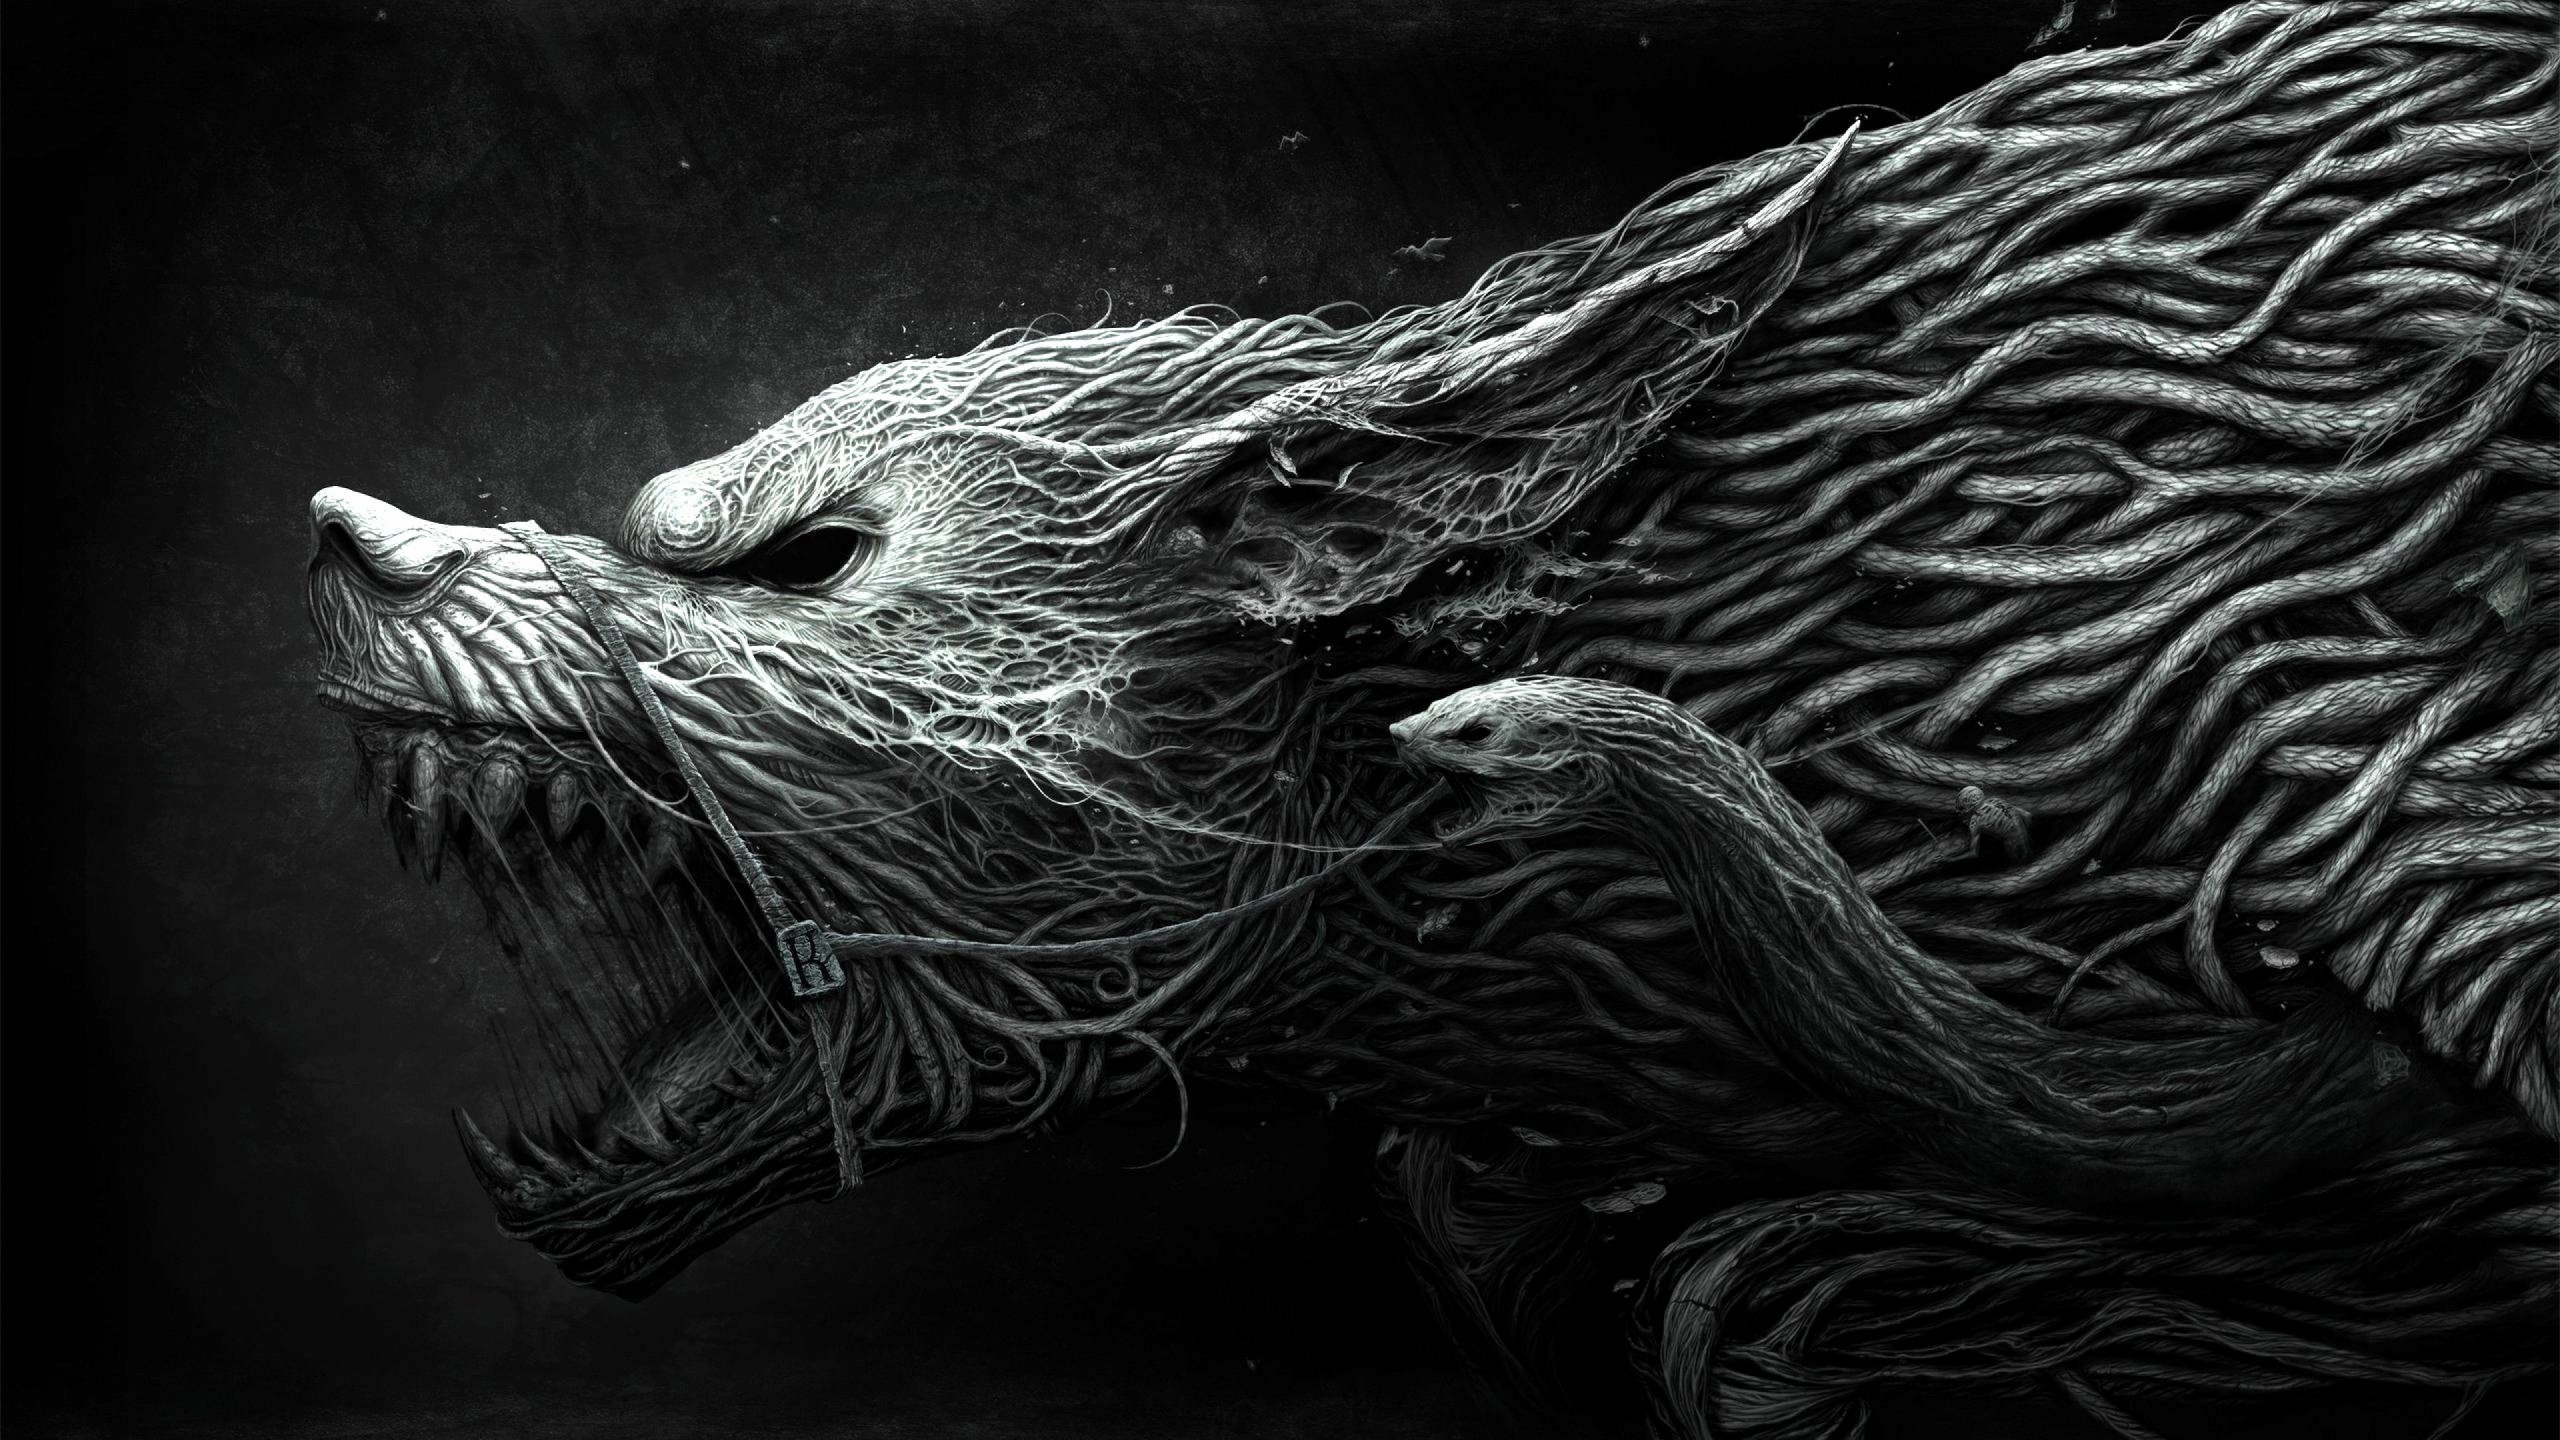 Wallpaper Wolf Hellhound art black and white dangerous noise 2560x1440